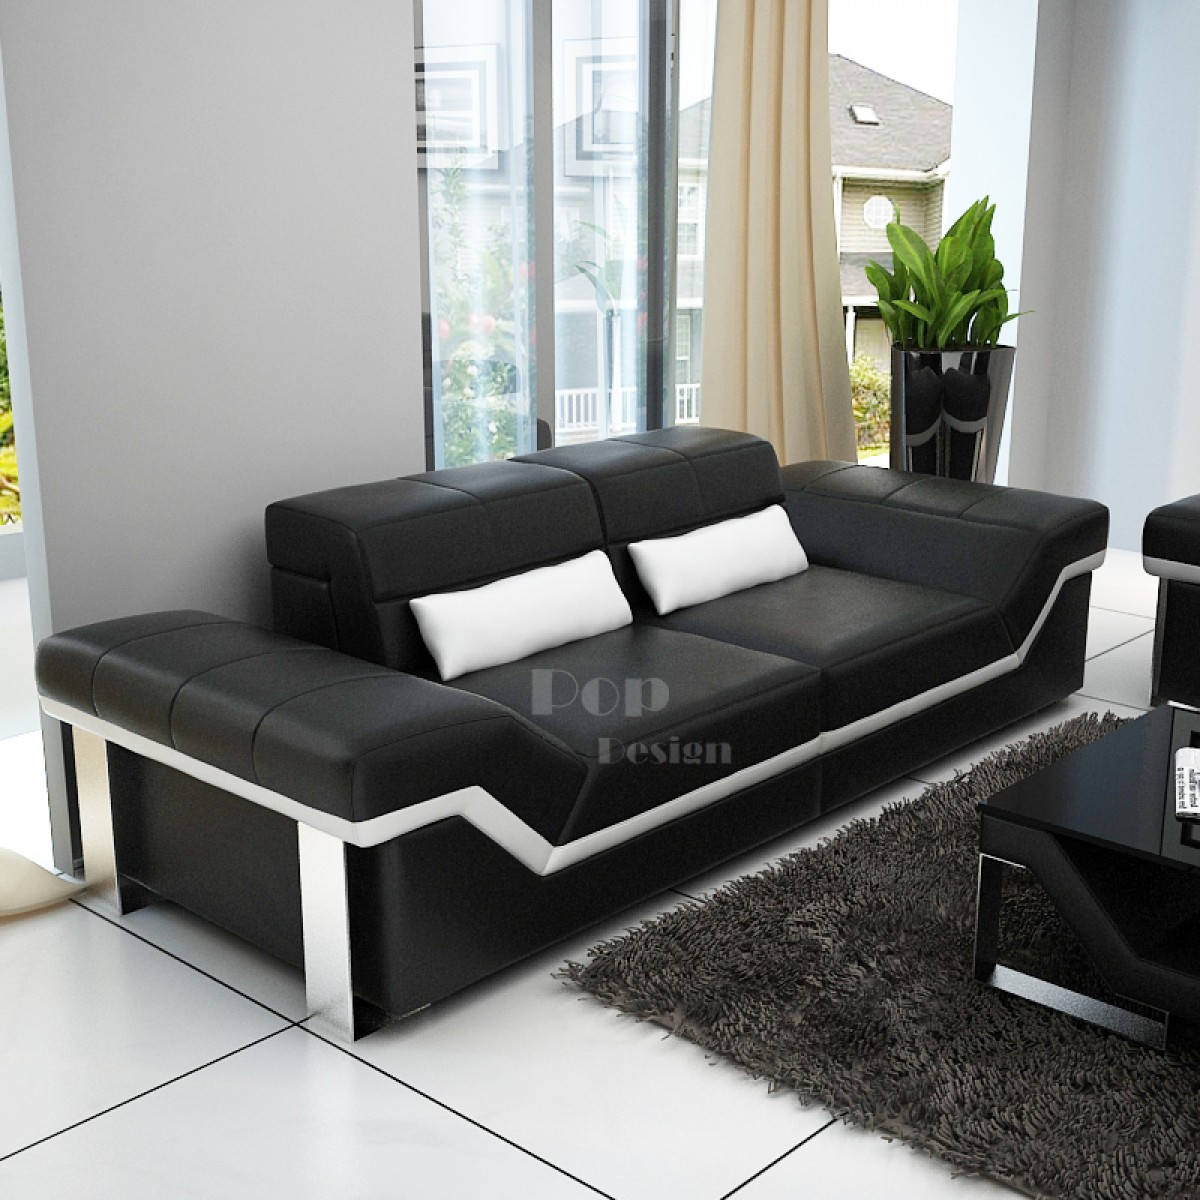 Canap design 3 places en cuir pleine fleur torino pop - Canape design places ...